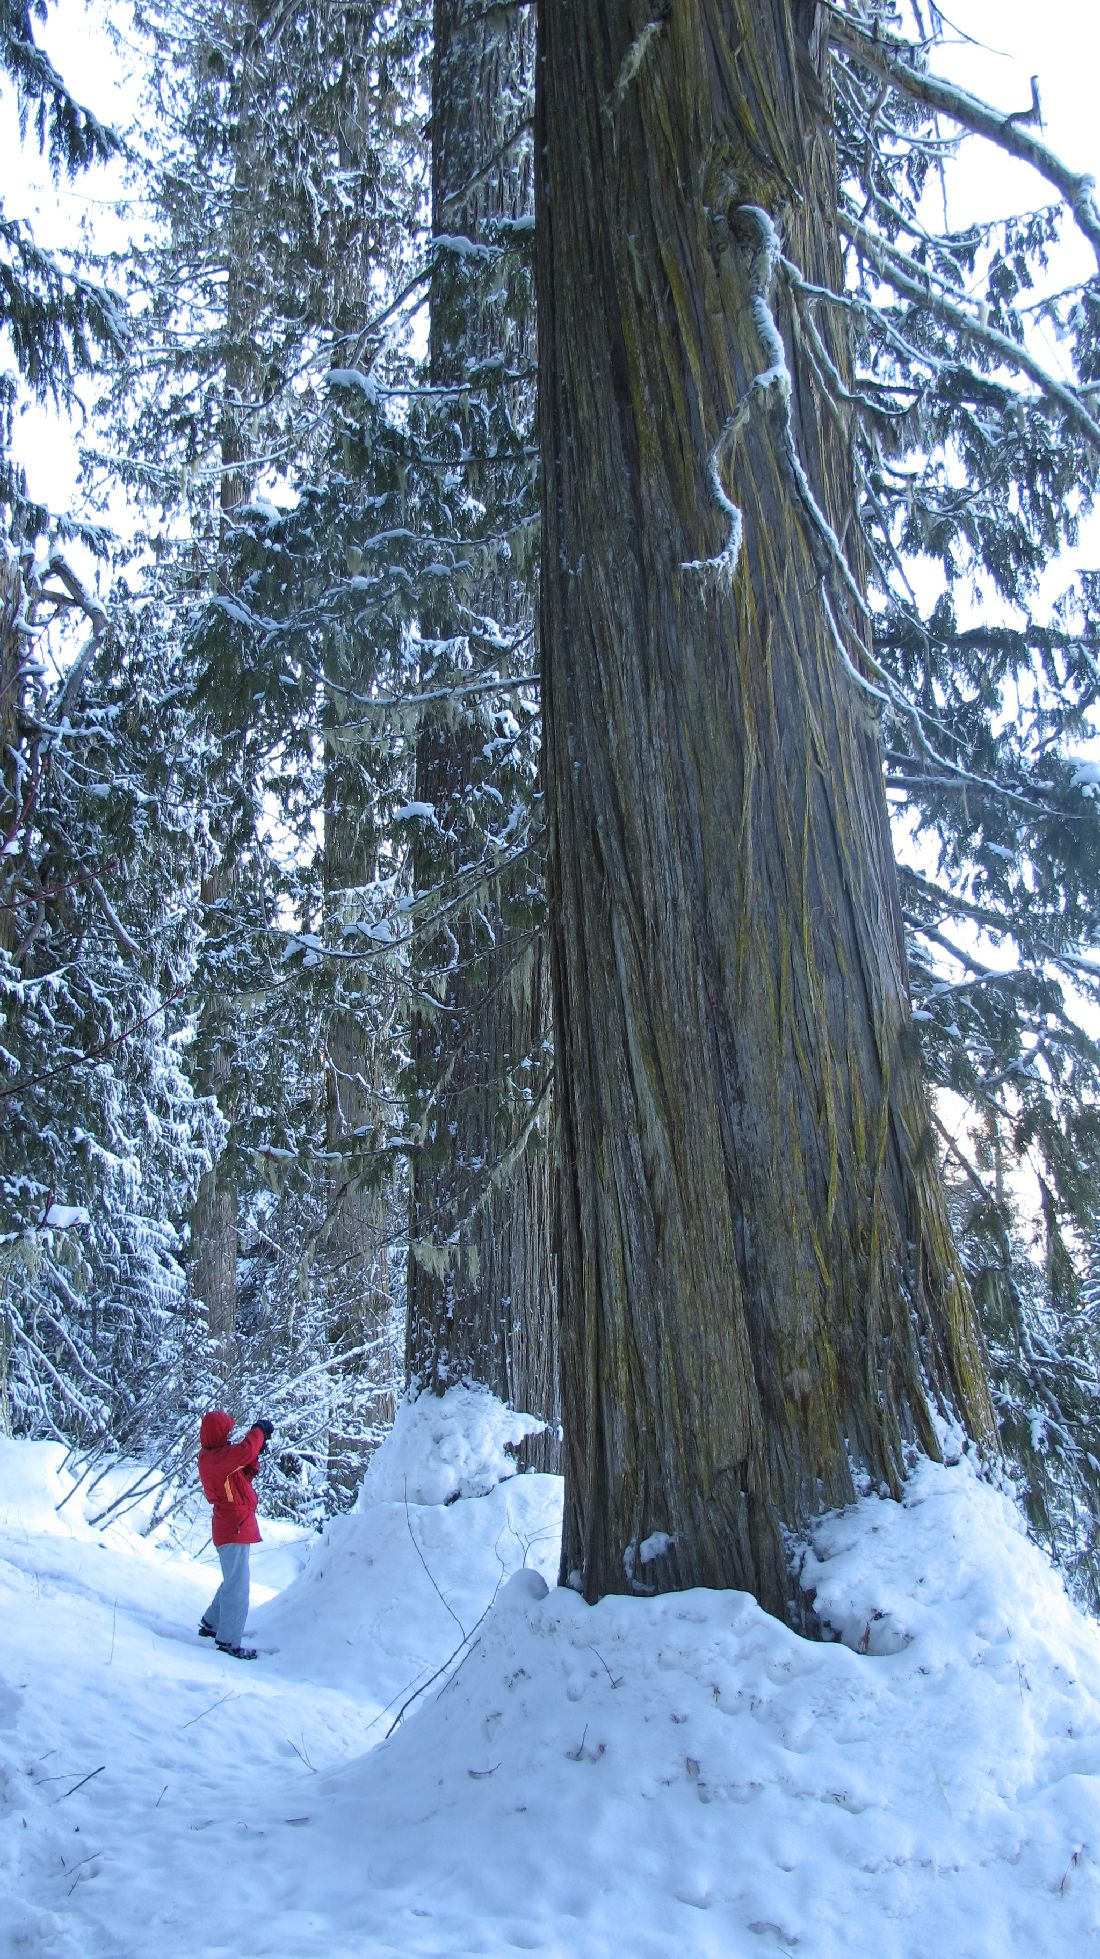 A person standing next to giant trees